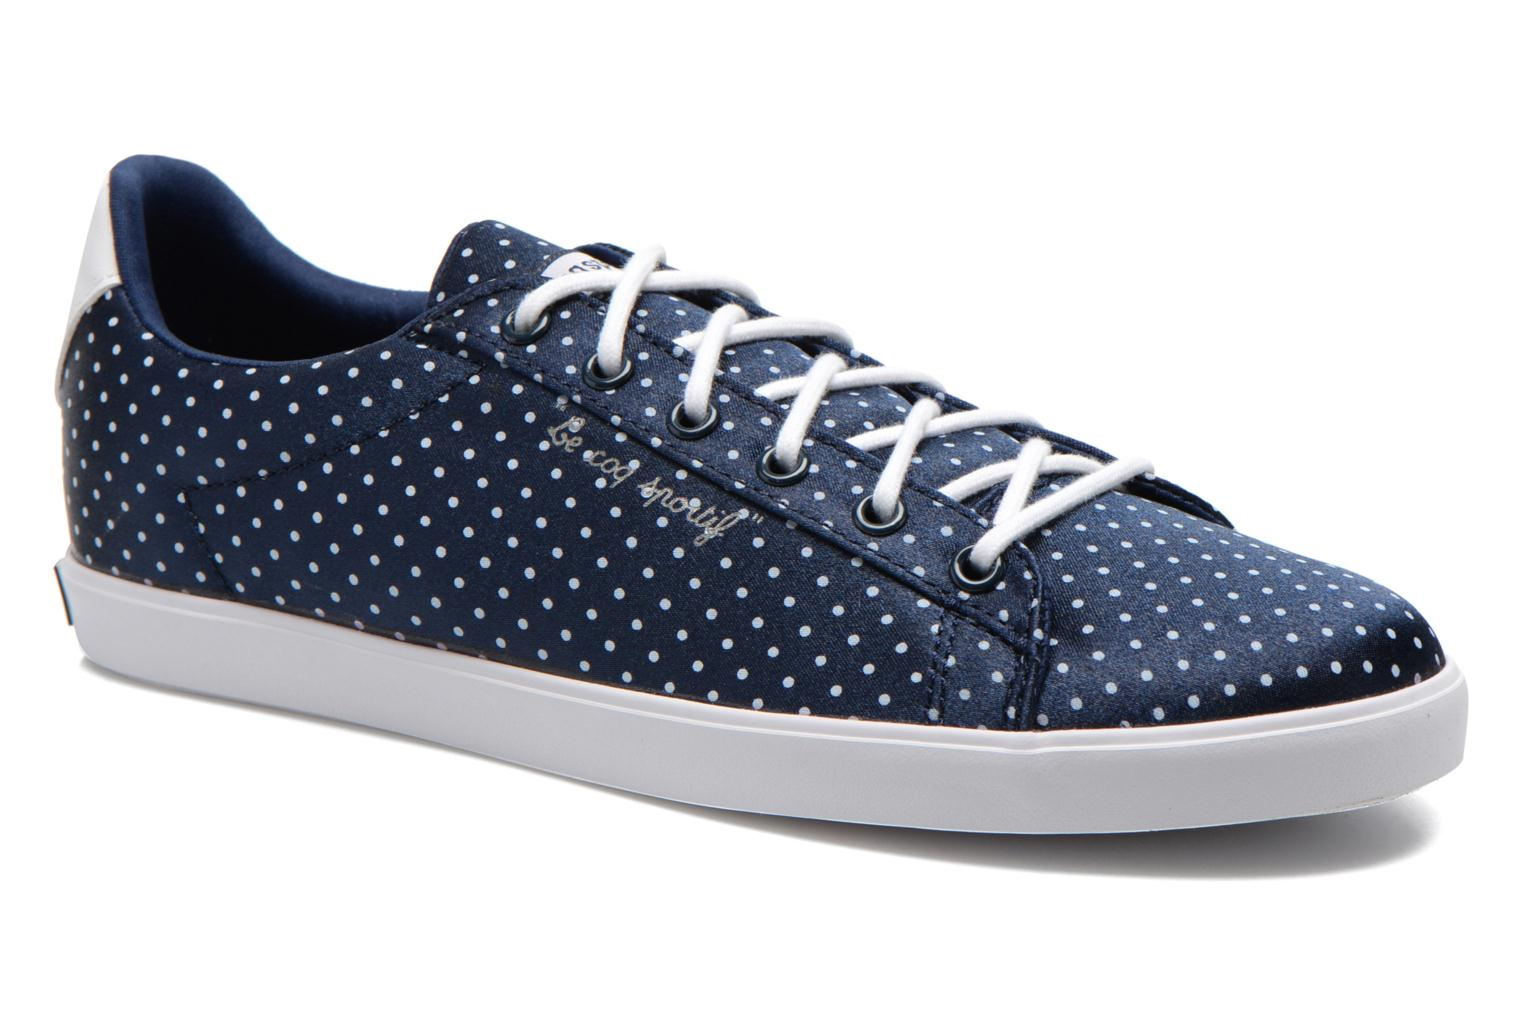 Sneakers Agate Lo Satin Dots by Le Coq Sportif